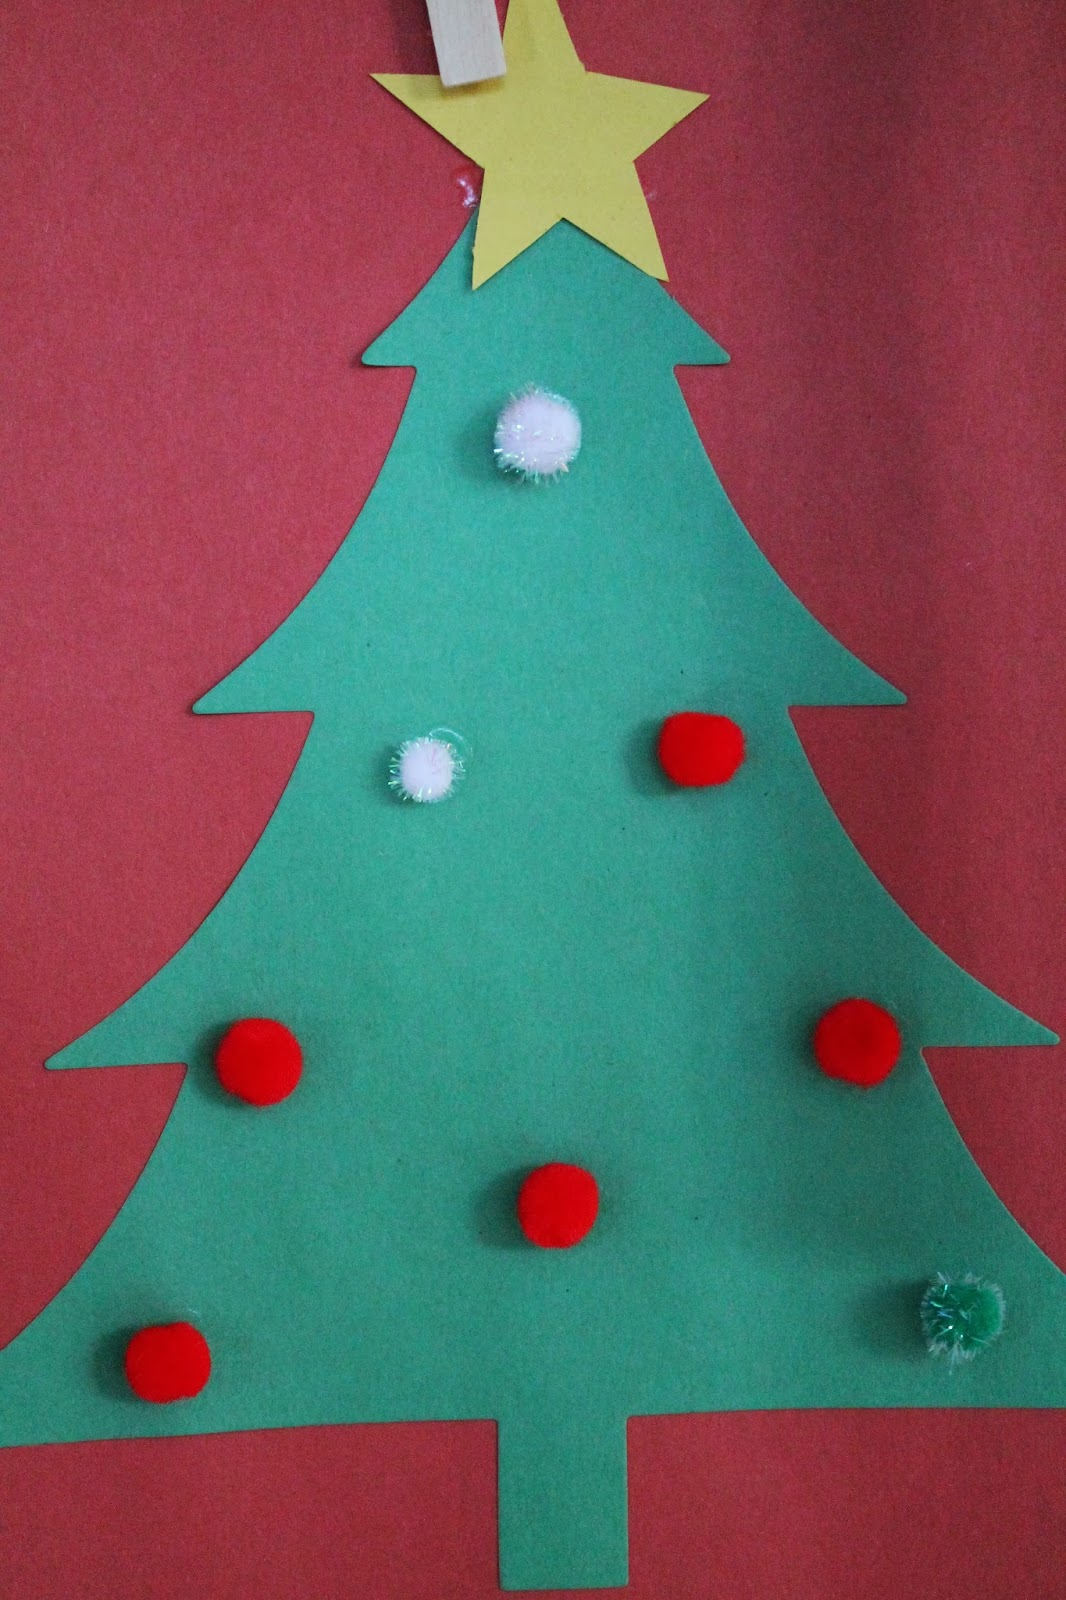 Christmas activities and crafts for kids the chirping moms christmas crafts for kids the chirping moms jeuxipadfo Images